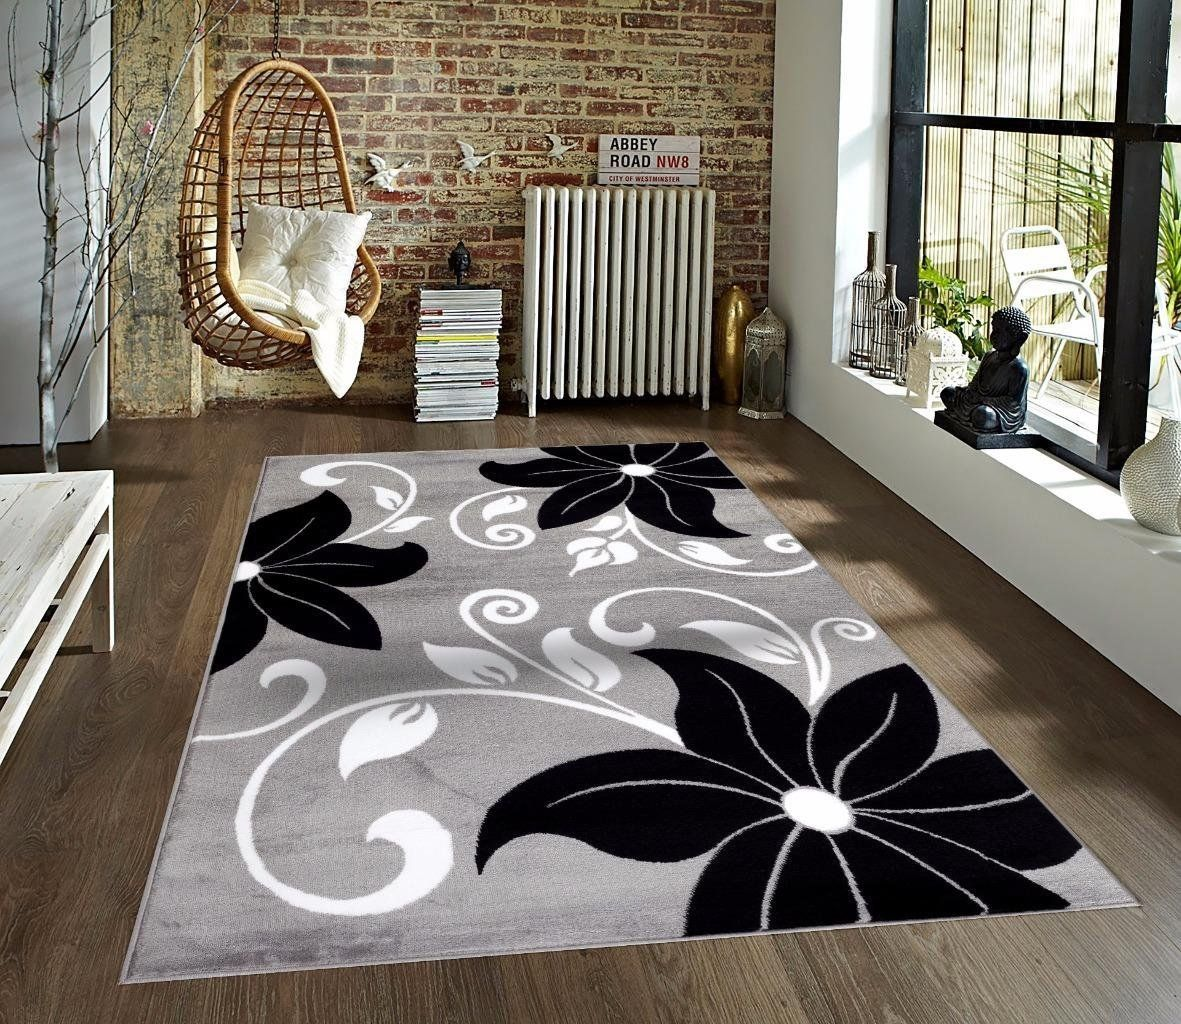 Amazon Com T1014 Gray Black White 7 10 X 10 2 Floral Oriental Area Rug Carpet Rugs On Carpet Area Rugs Contemporary Area Rugs